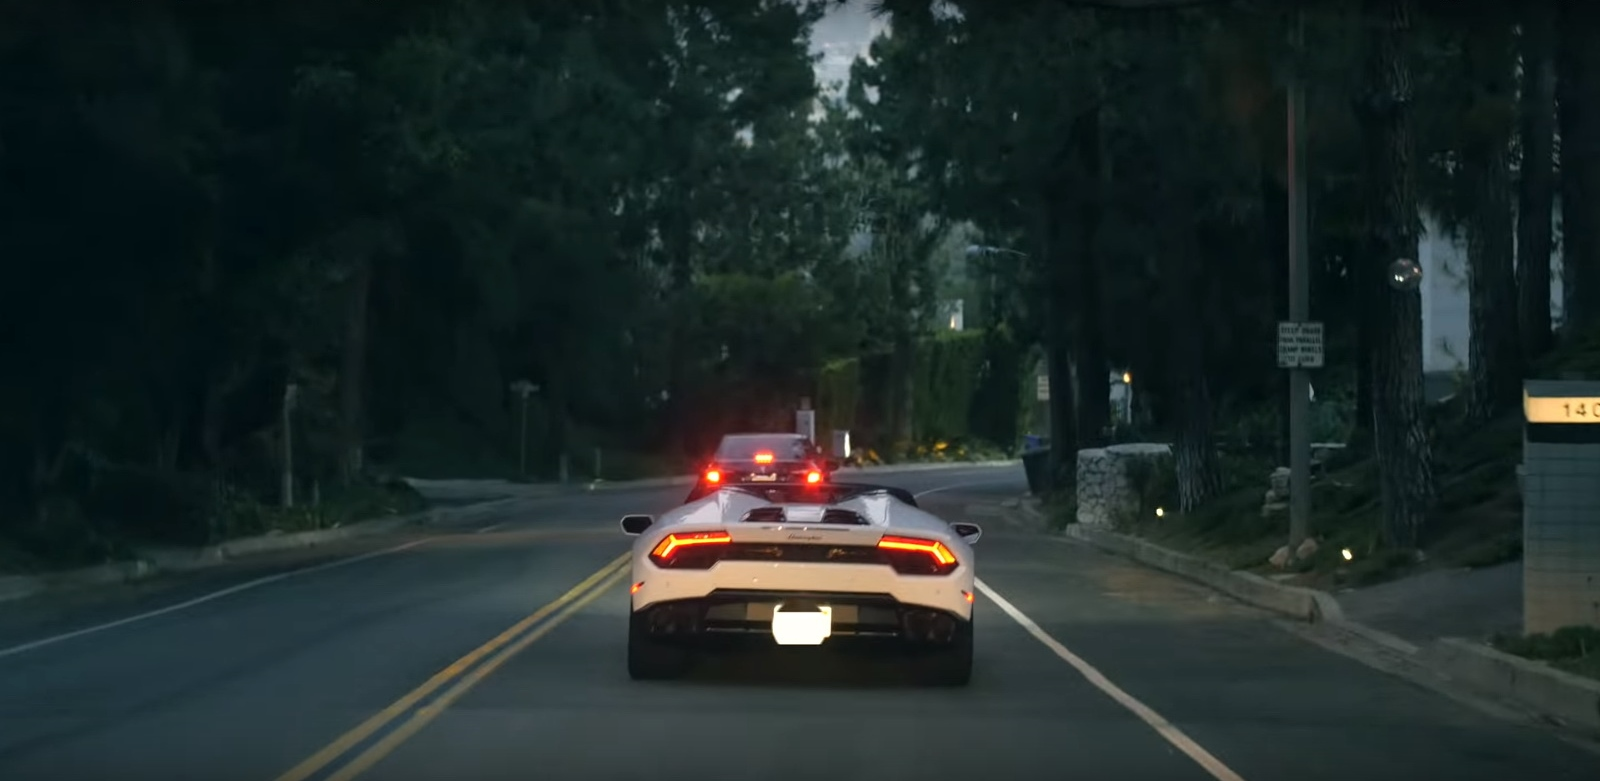 Lamborghini Huracán - 41 - YoungBoy Never Broke Again - Official Music Video Product Placement